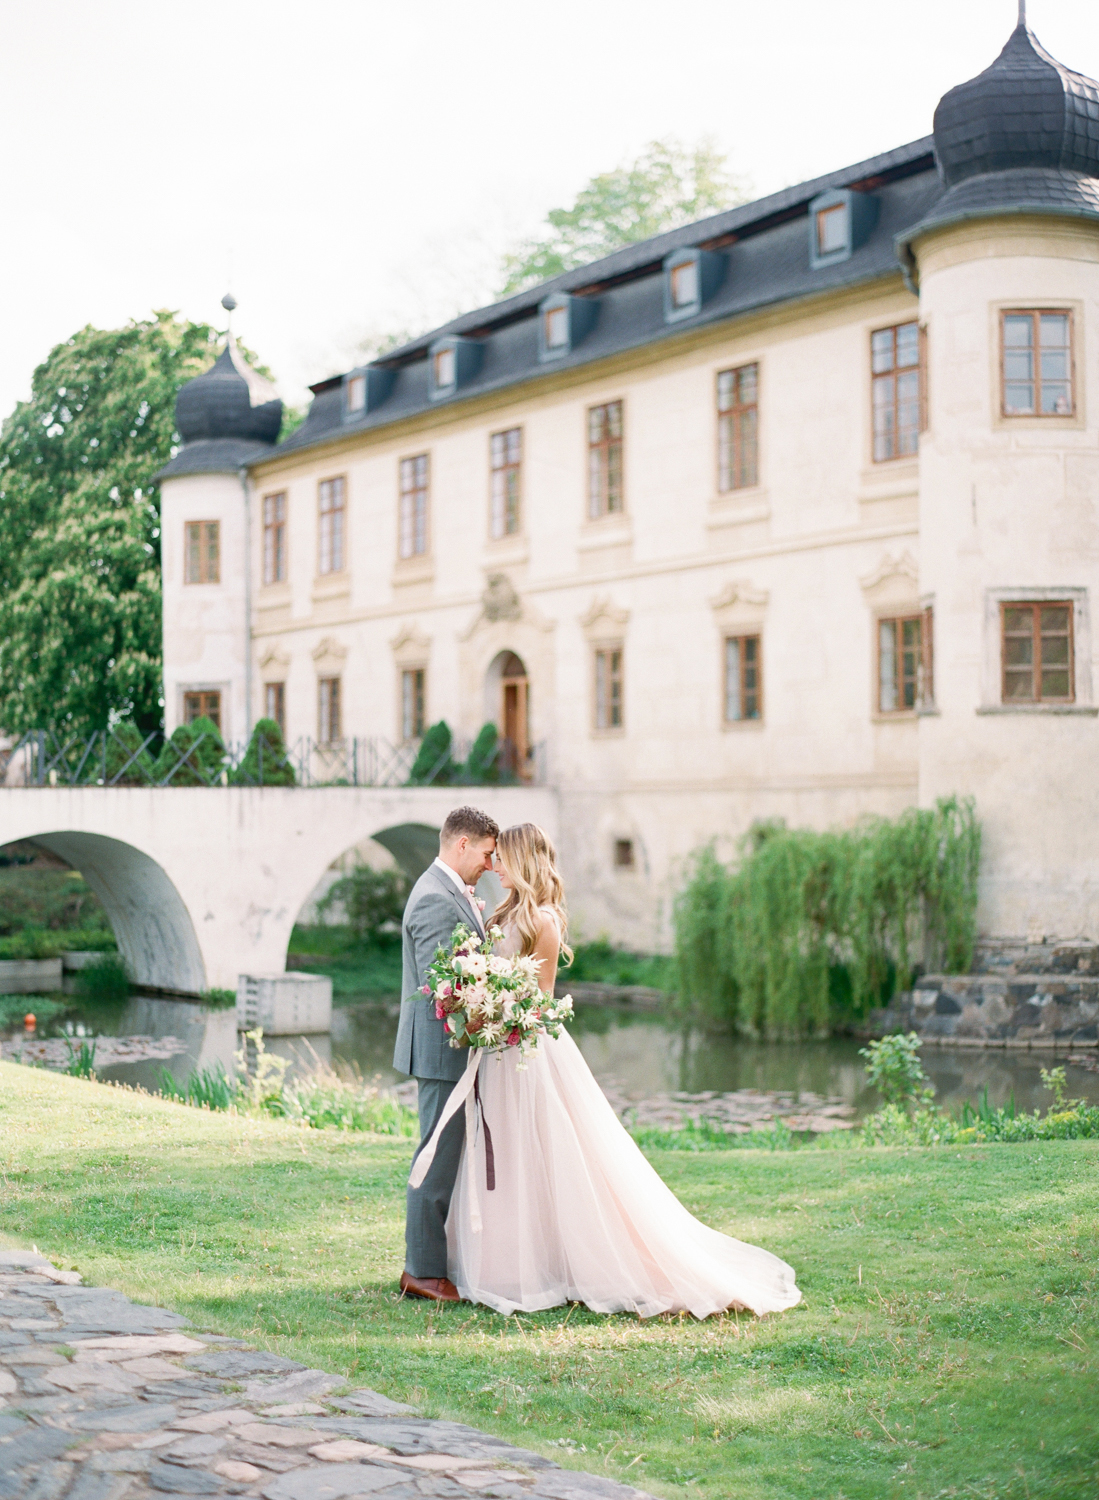 chateau_trebesice_wedding_photographer_prague_wedding_165.JPG